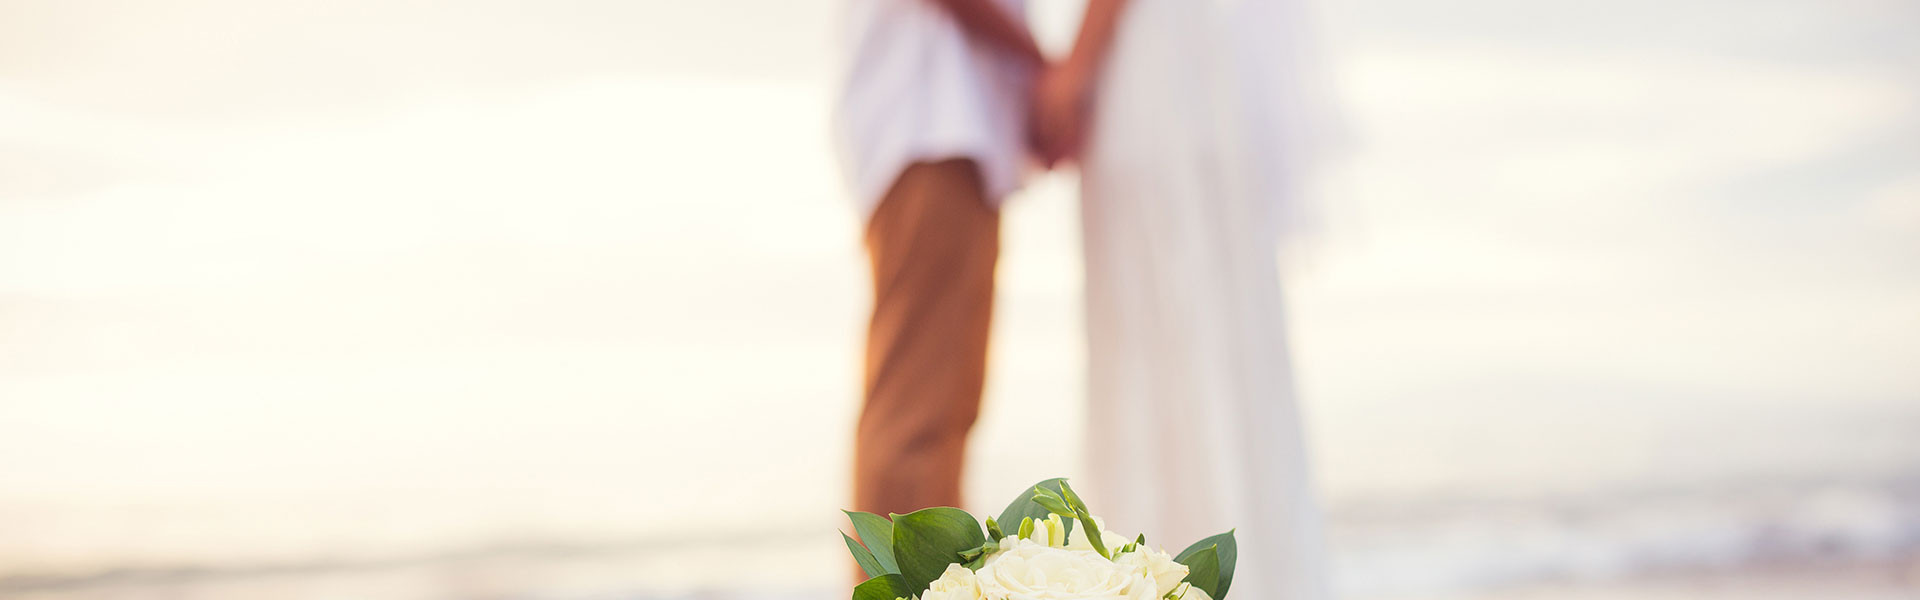 Cocoa Beach Wedding Venues with Spectacular Views | Westgate Cocoa Beach Resort